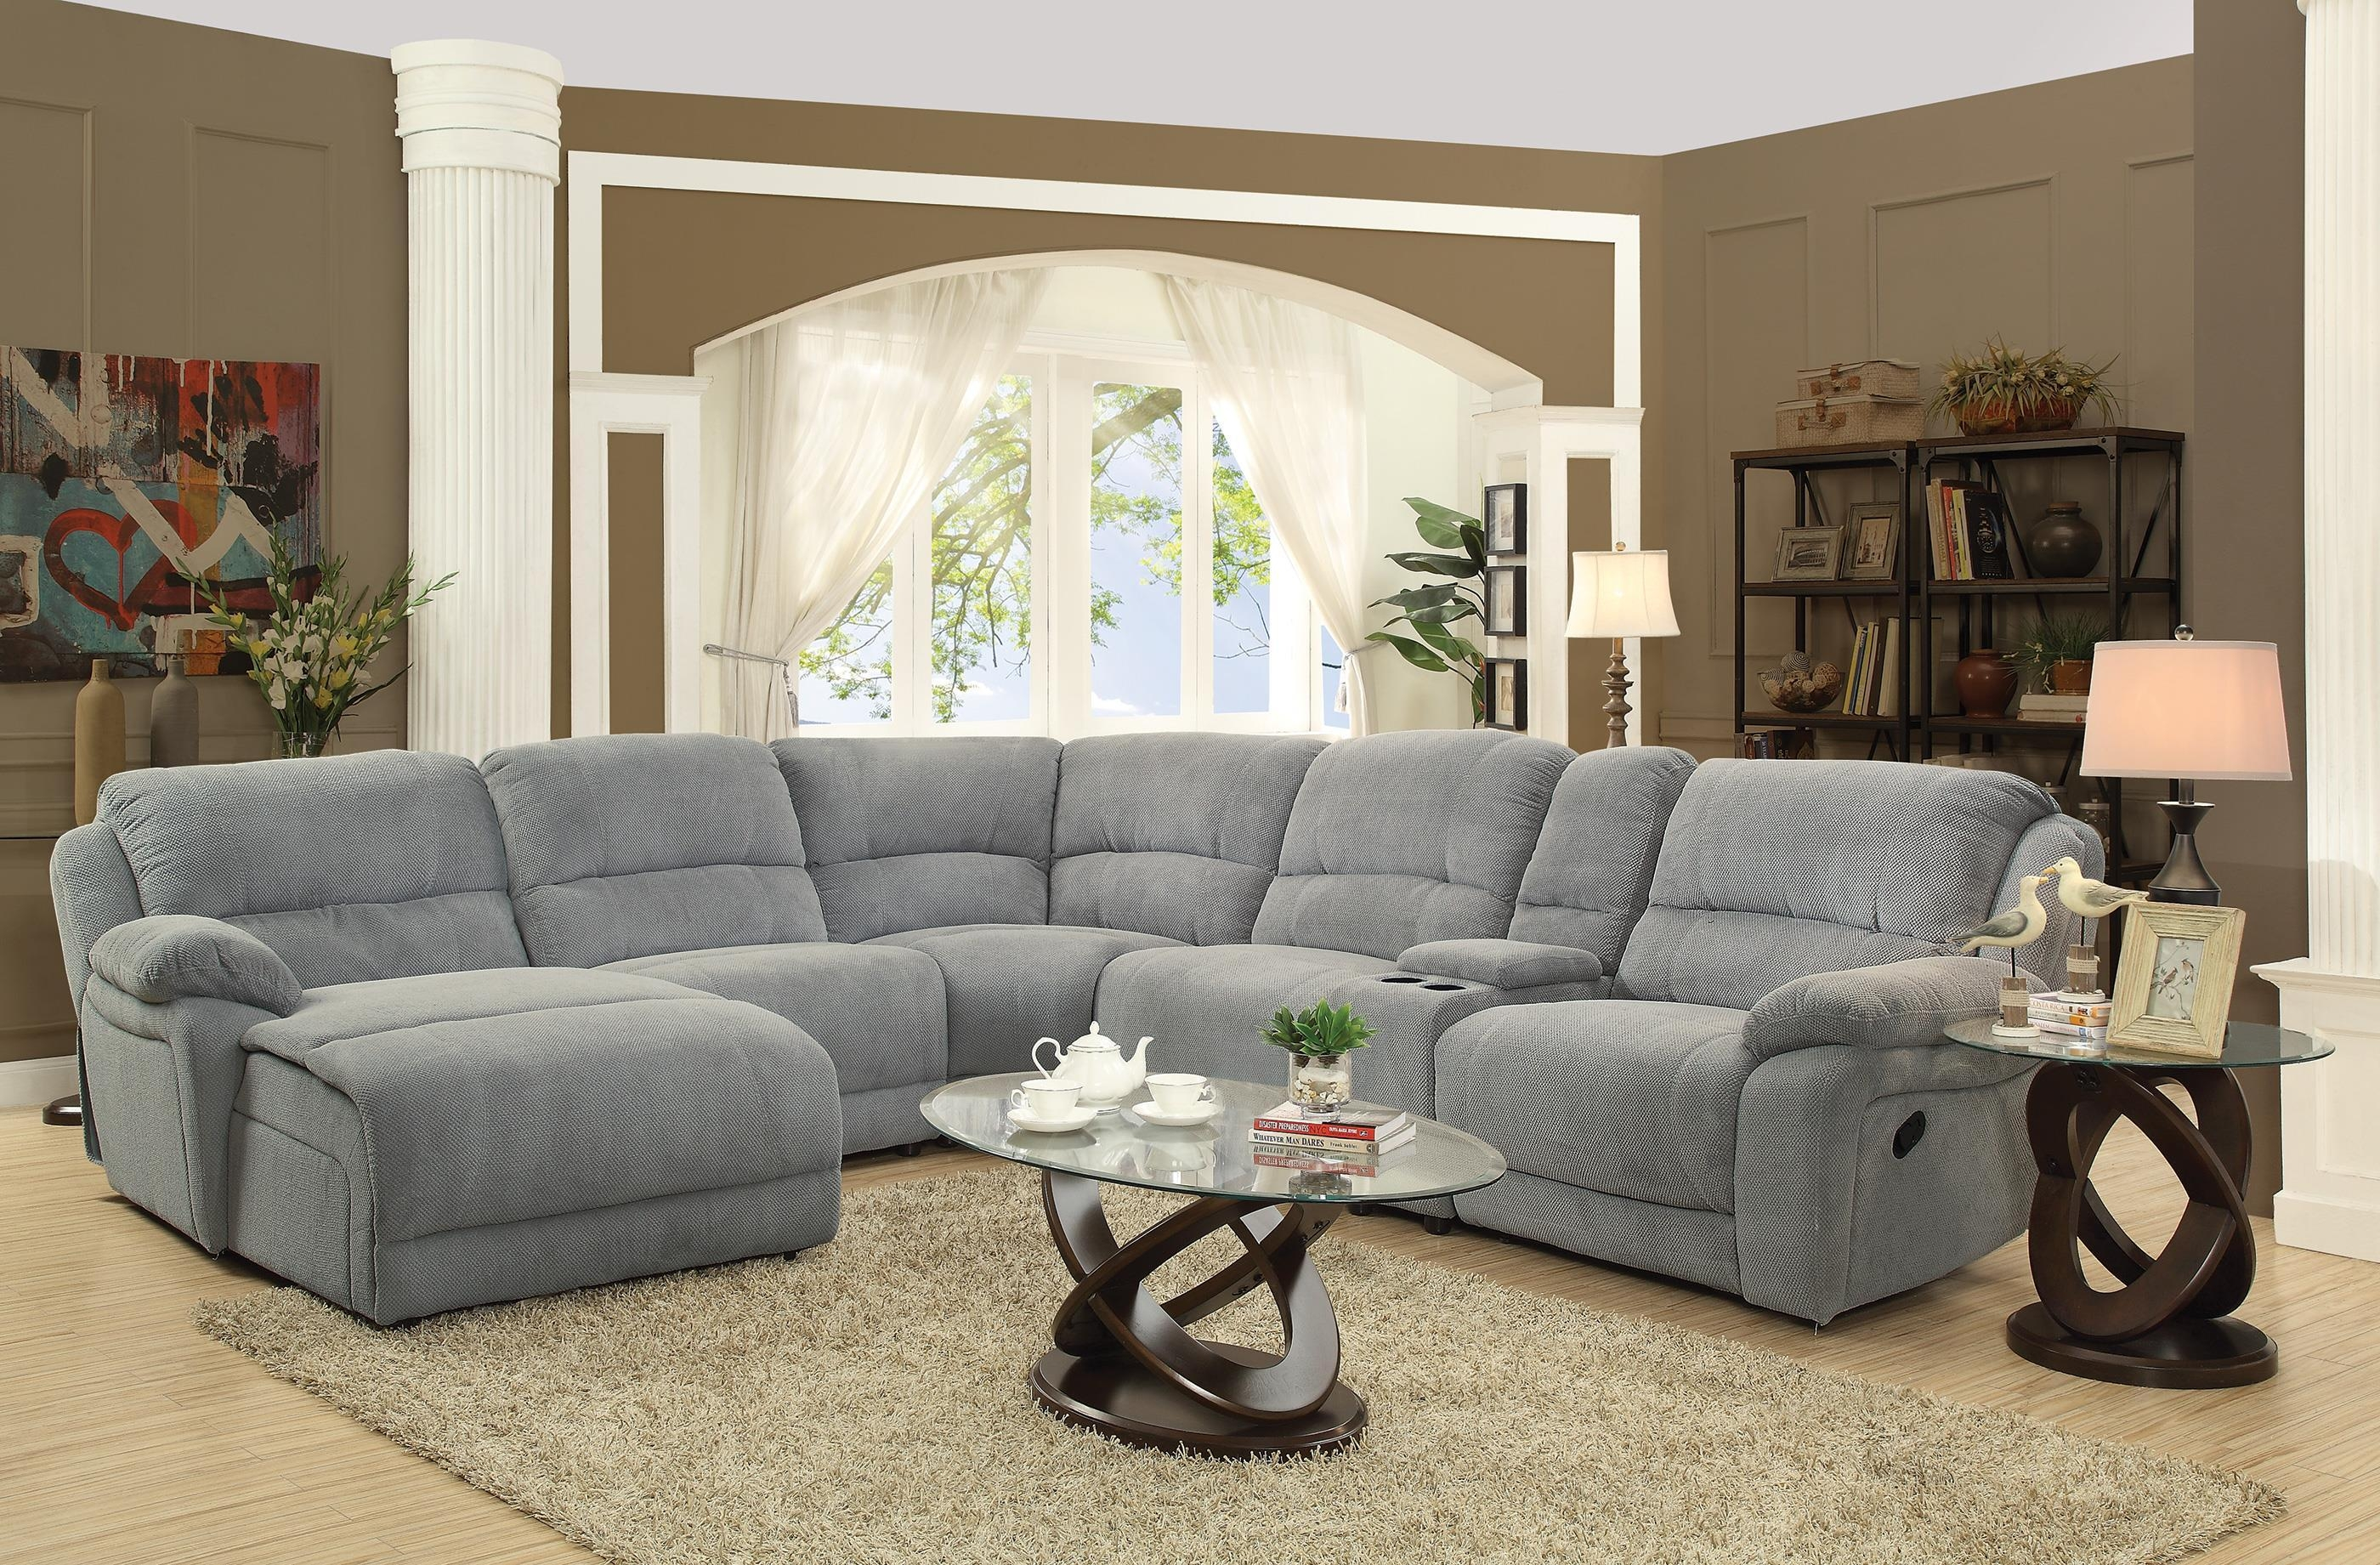 Living Room: Captivating Coaster Sectional Design For Your Lovely Inside Coaster Sectional Sofas (Image 14 of 20)